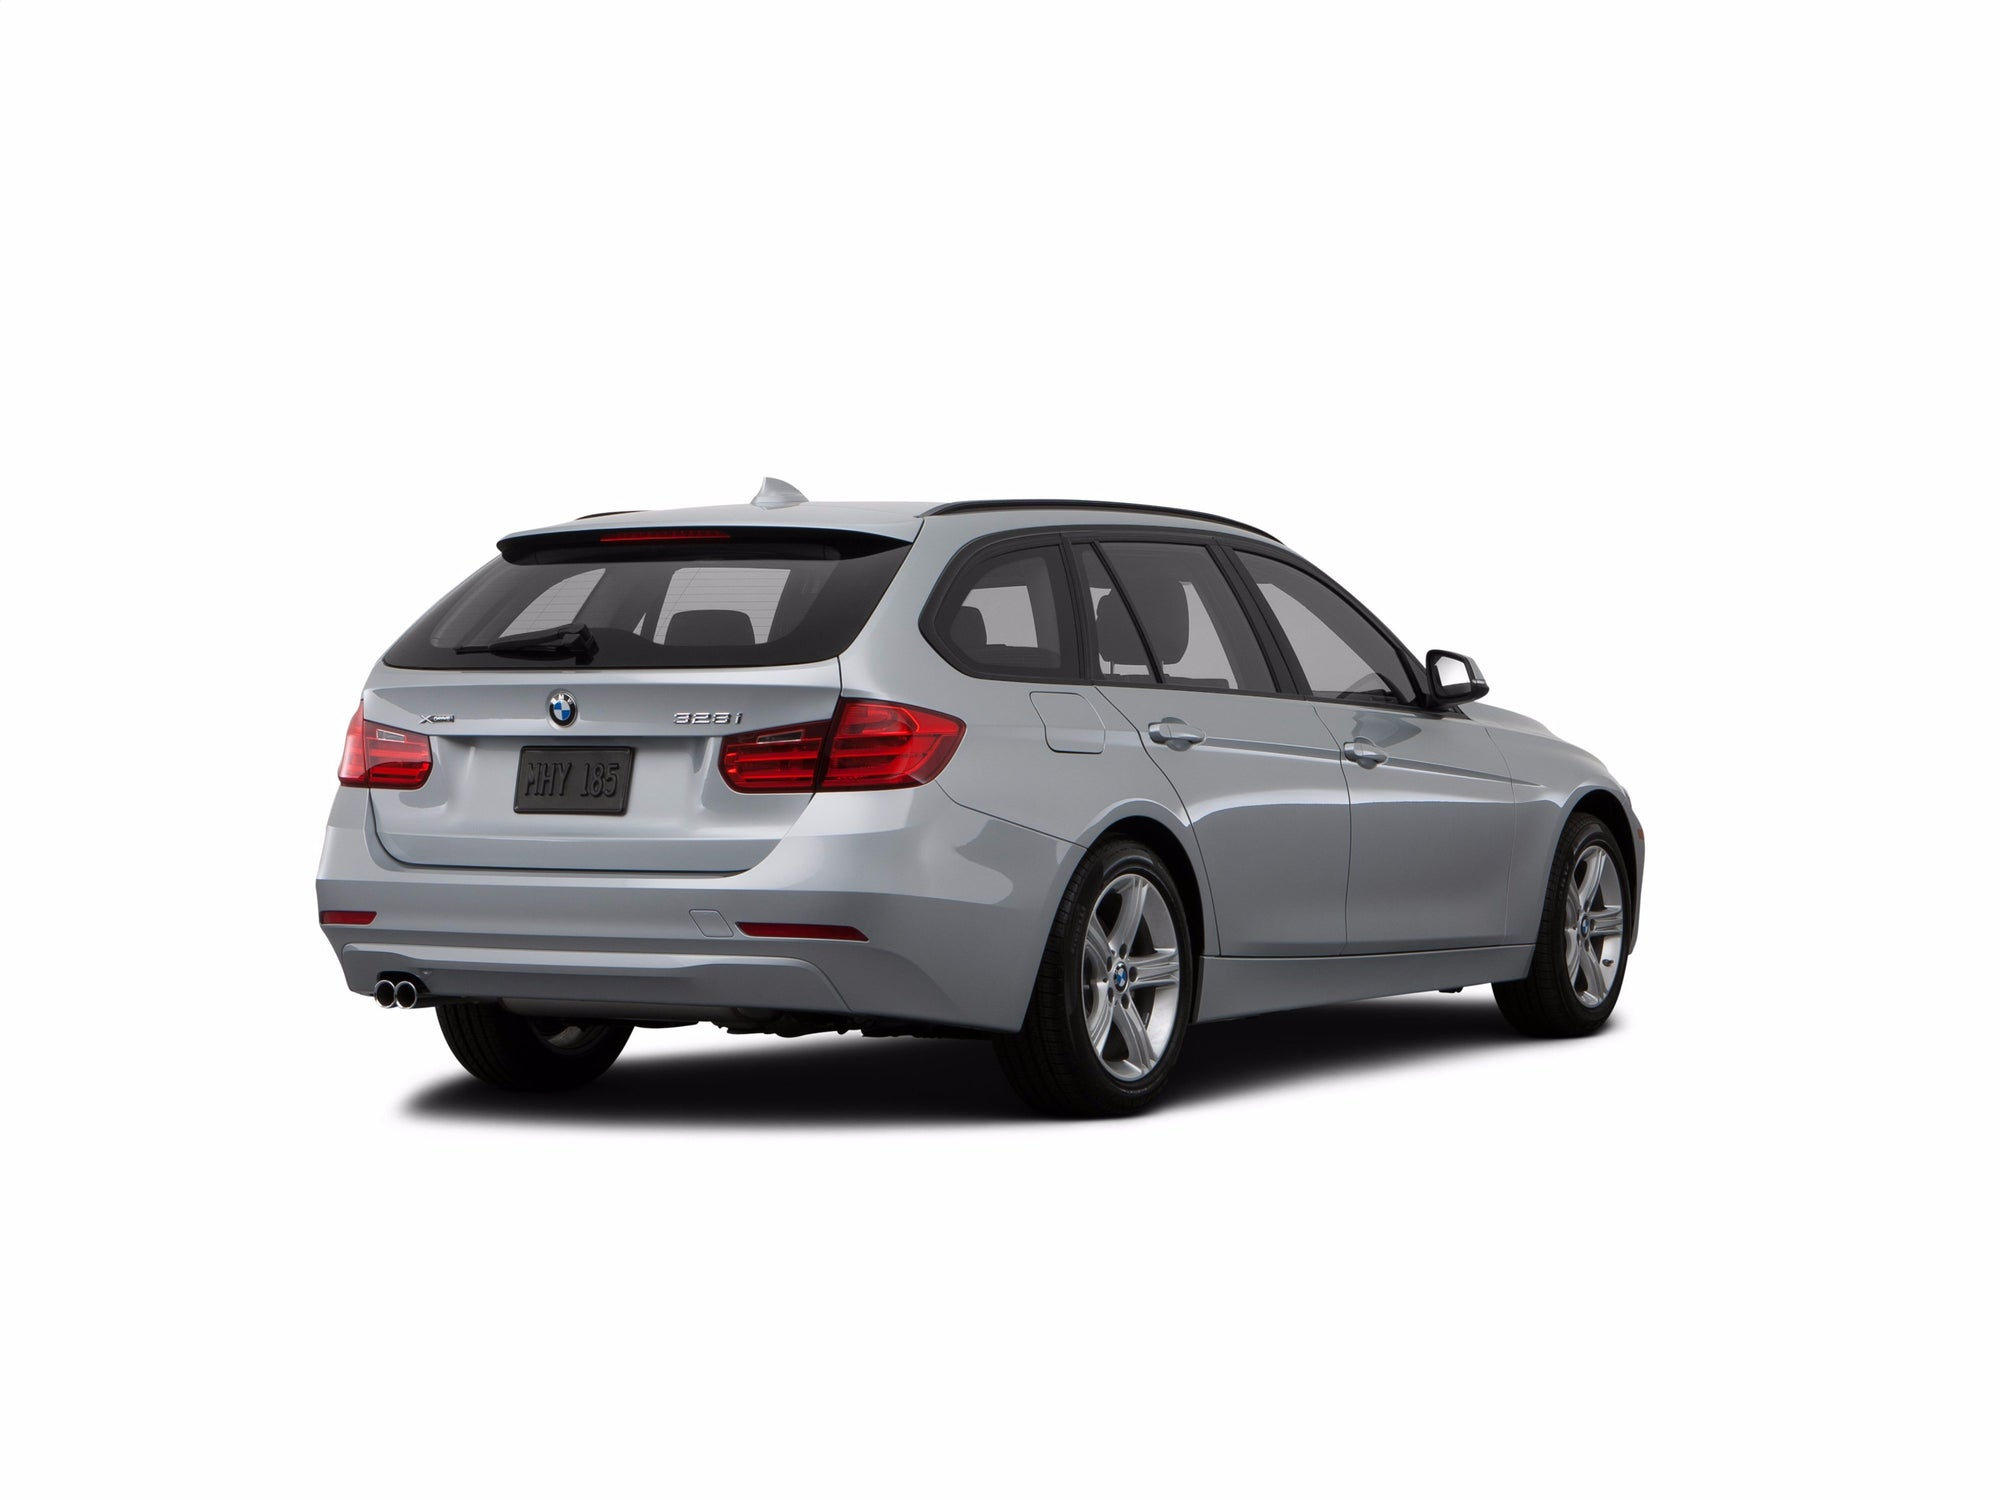 BMW 3 Series Hitch Convertible (E93) 2007 - 2012 - Stealth Hitches -  Tailored